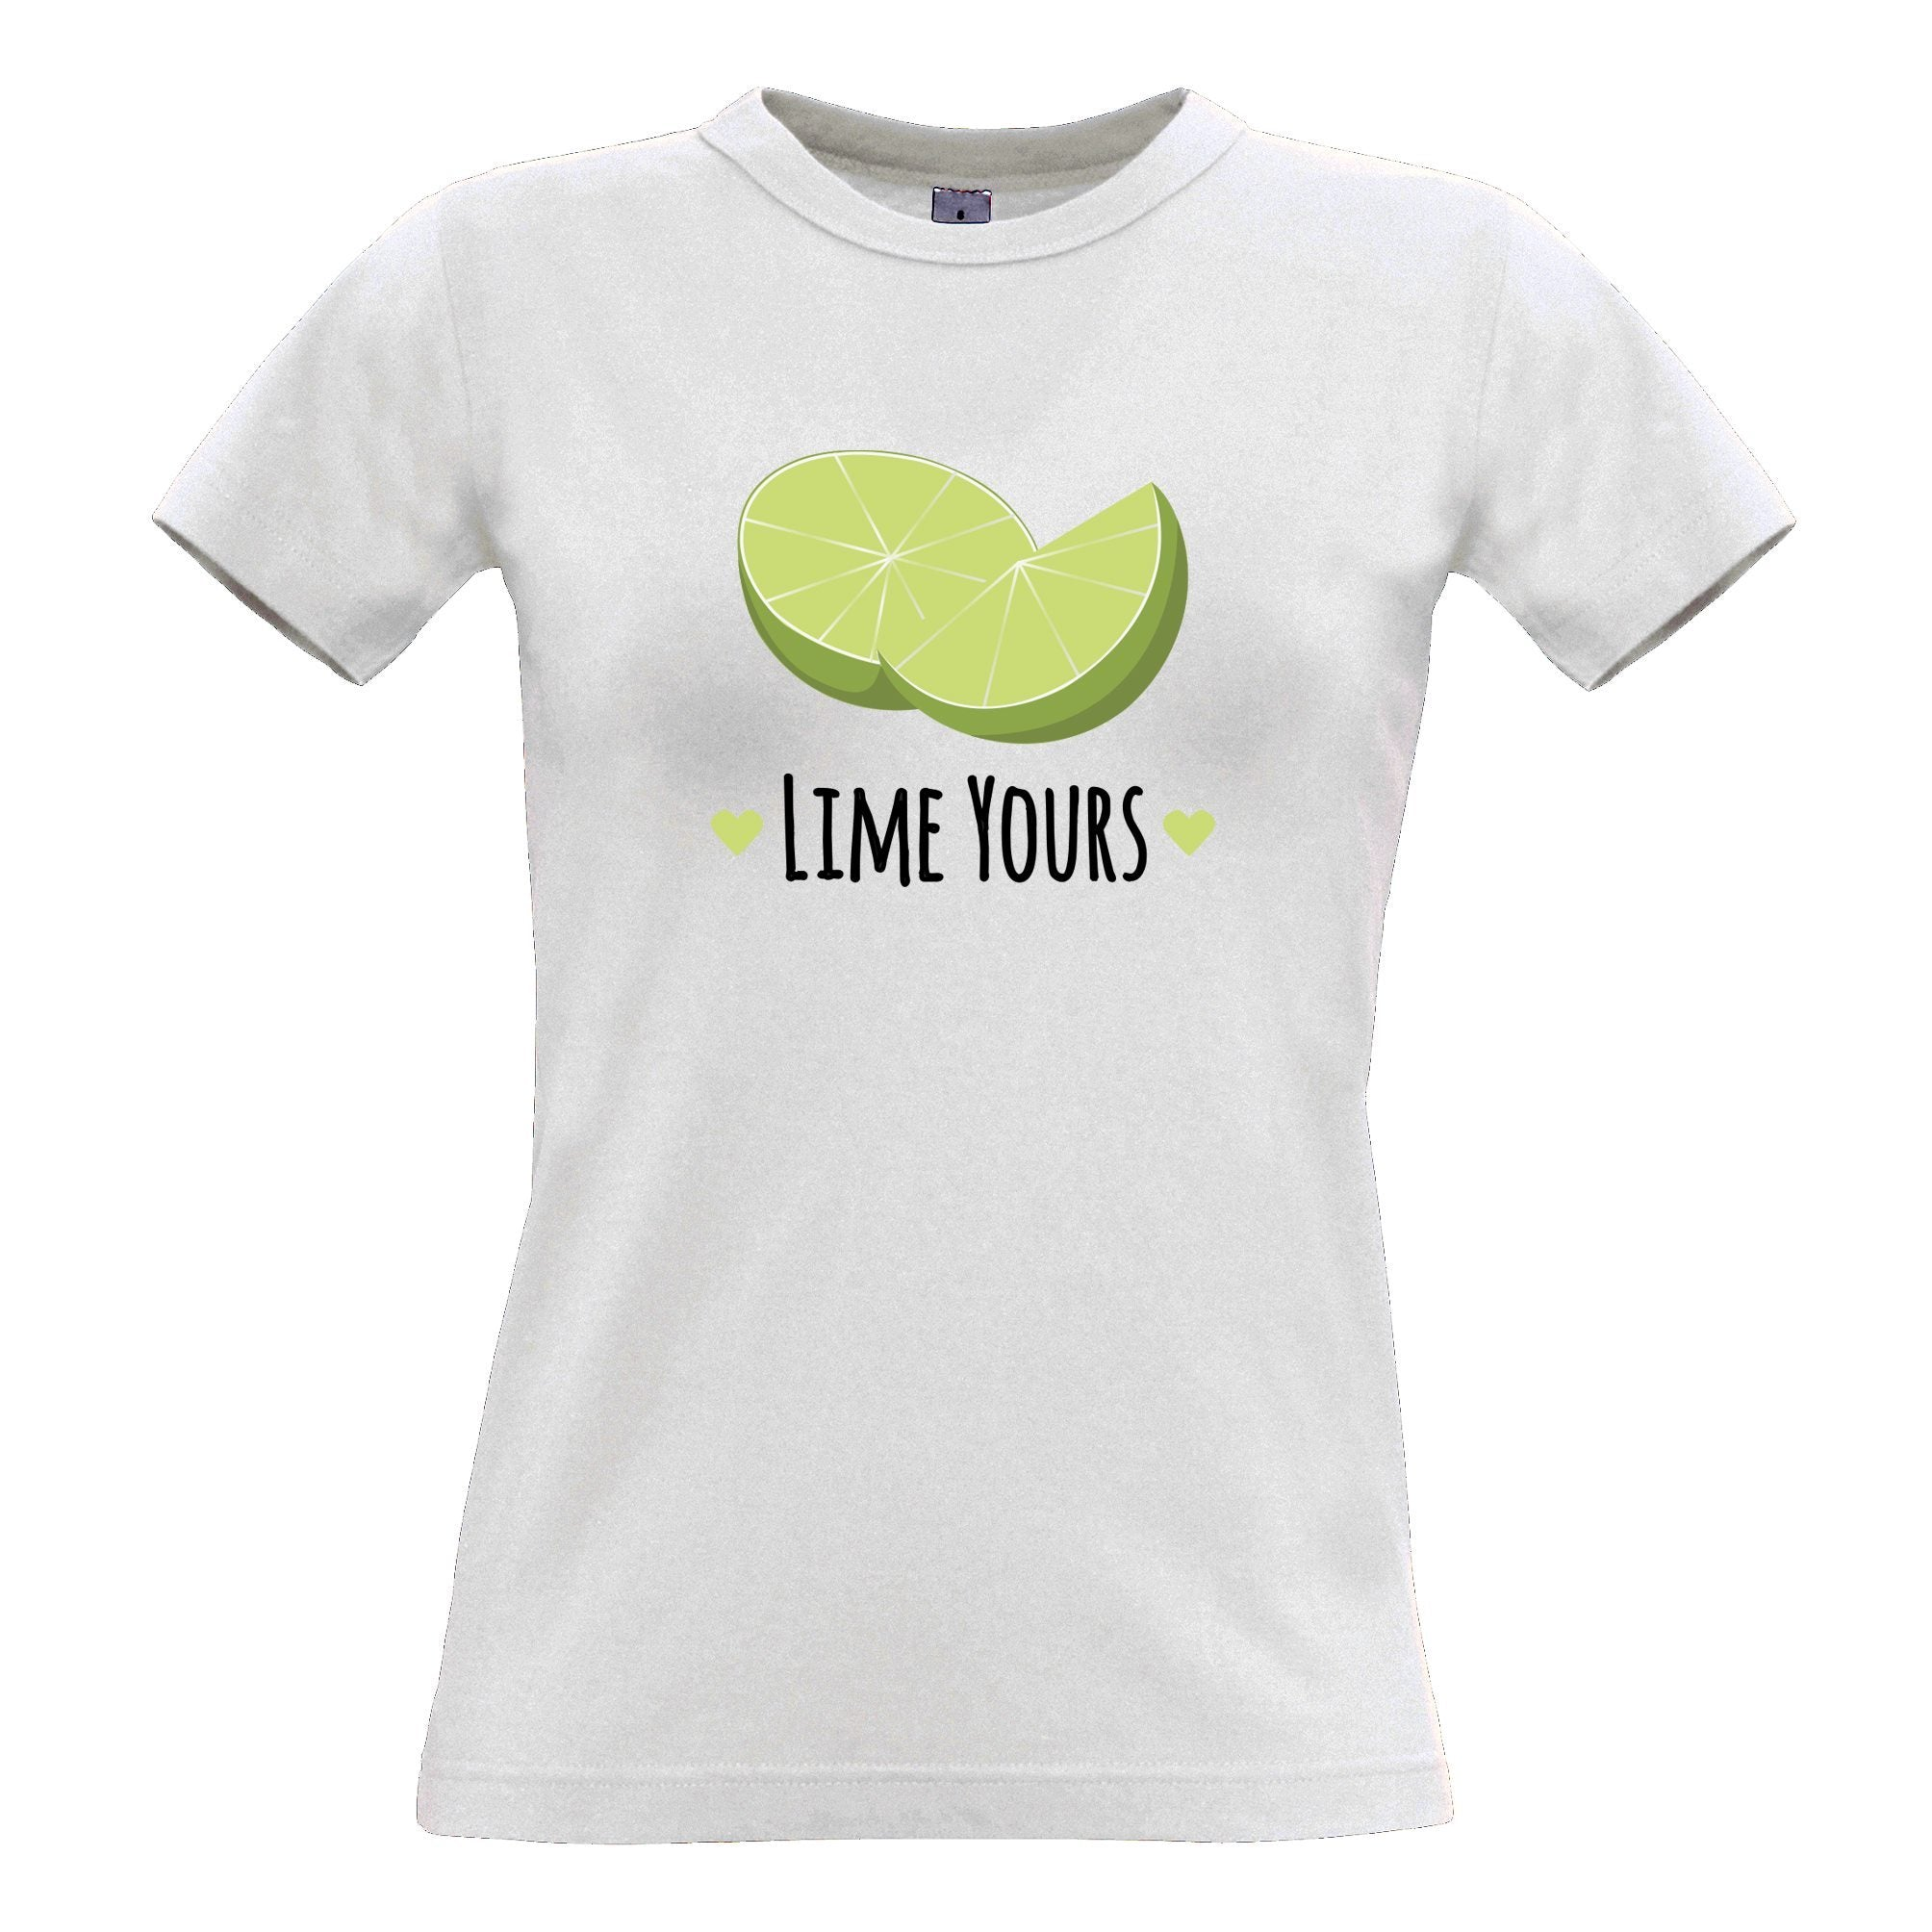 Novelty Couples Pun Womens T Shirt I'm Yours Lime Joke Slogan